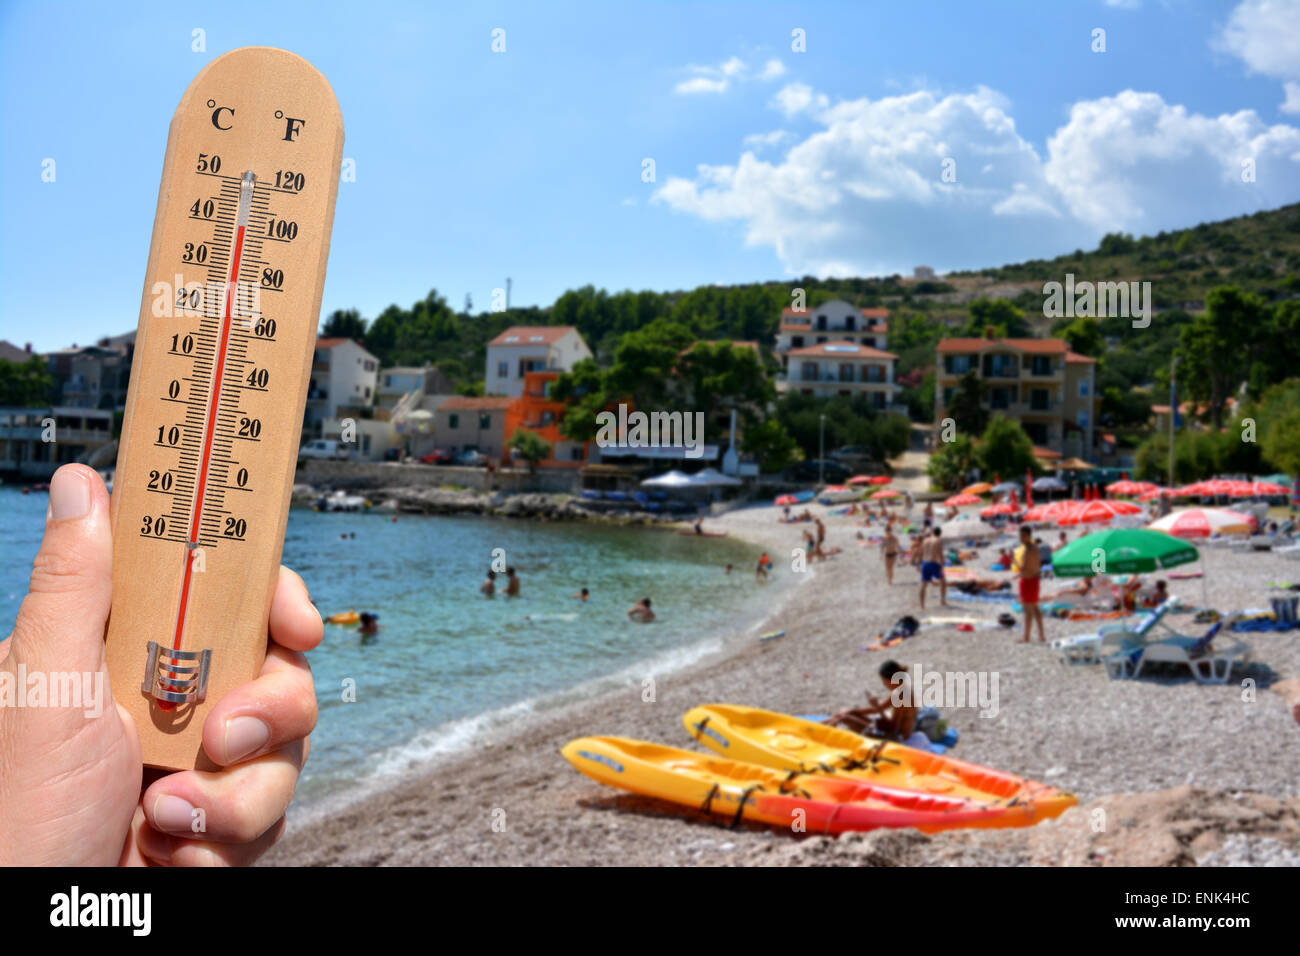 A thermometer scale shows extreme high temperatures during a heat wave and beach in background. Skin cancer warning - Stock Image